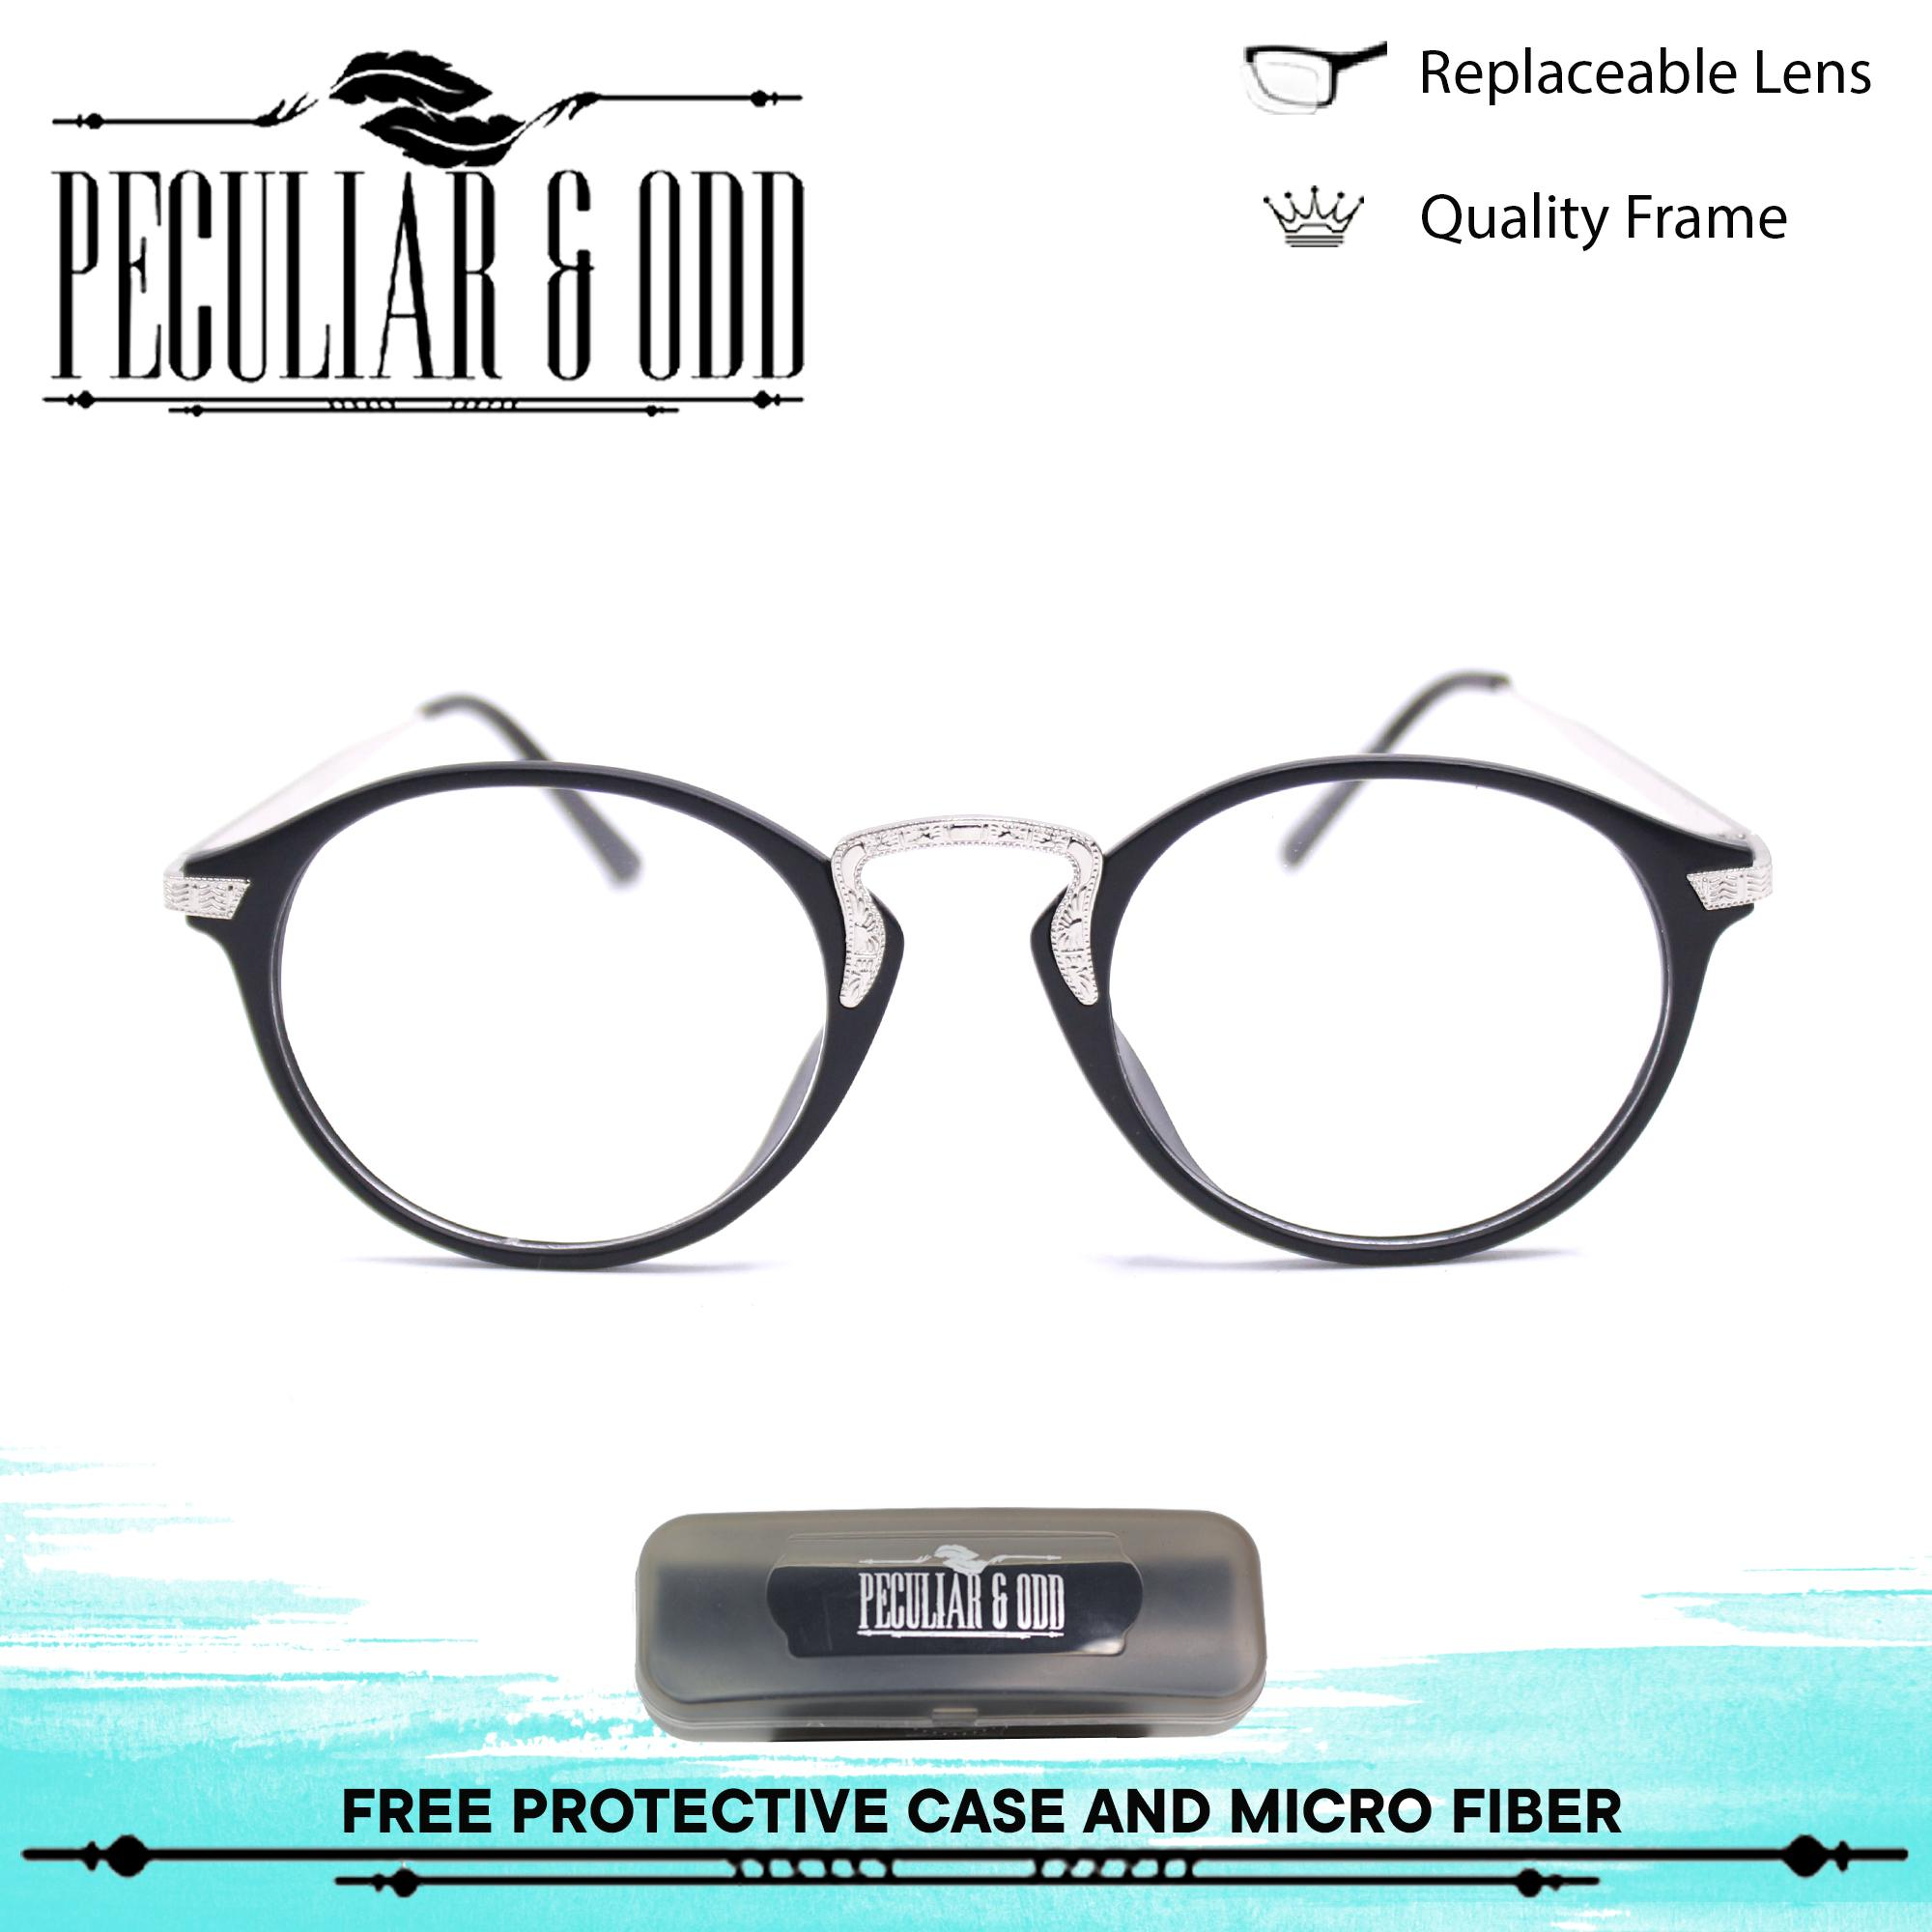 dfdb982a6442 Peculiar Premium Round Optical Eyeglass 3018 BlackSilver in Aircraft  Aluminum-magnesium Alloy with Replaceable Lens Unisex